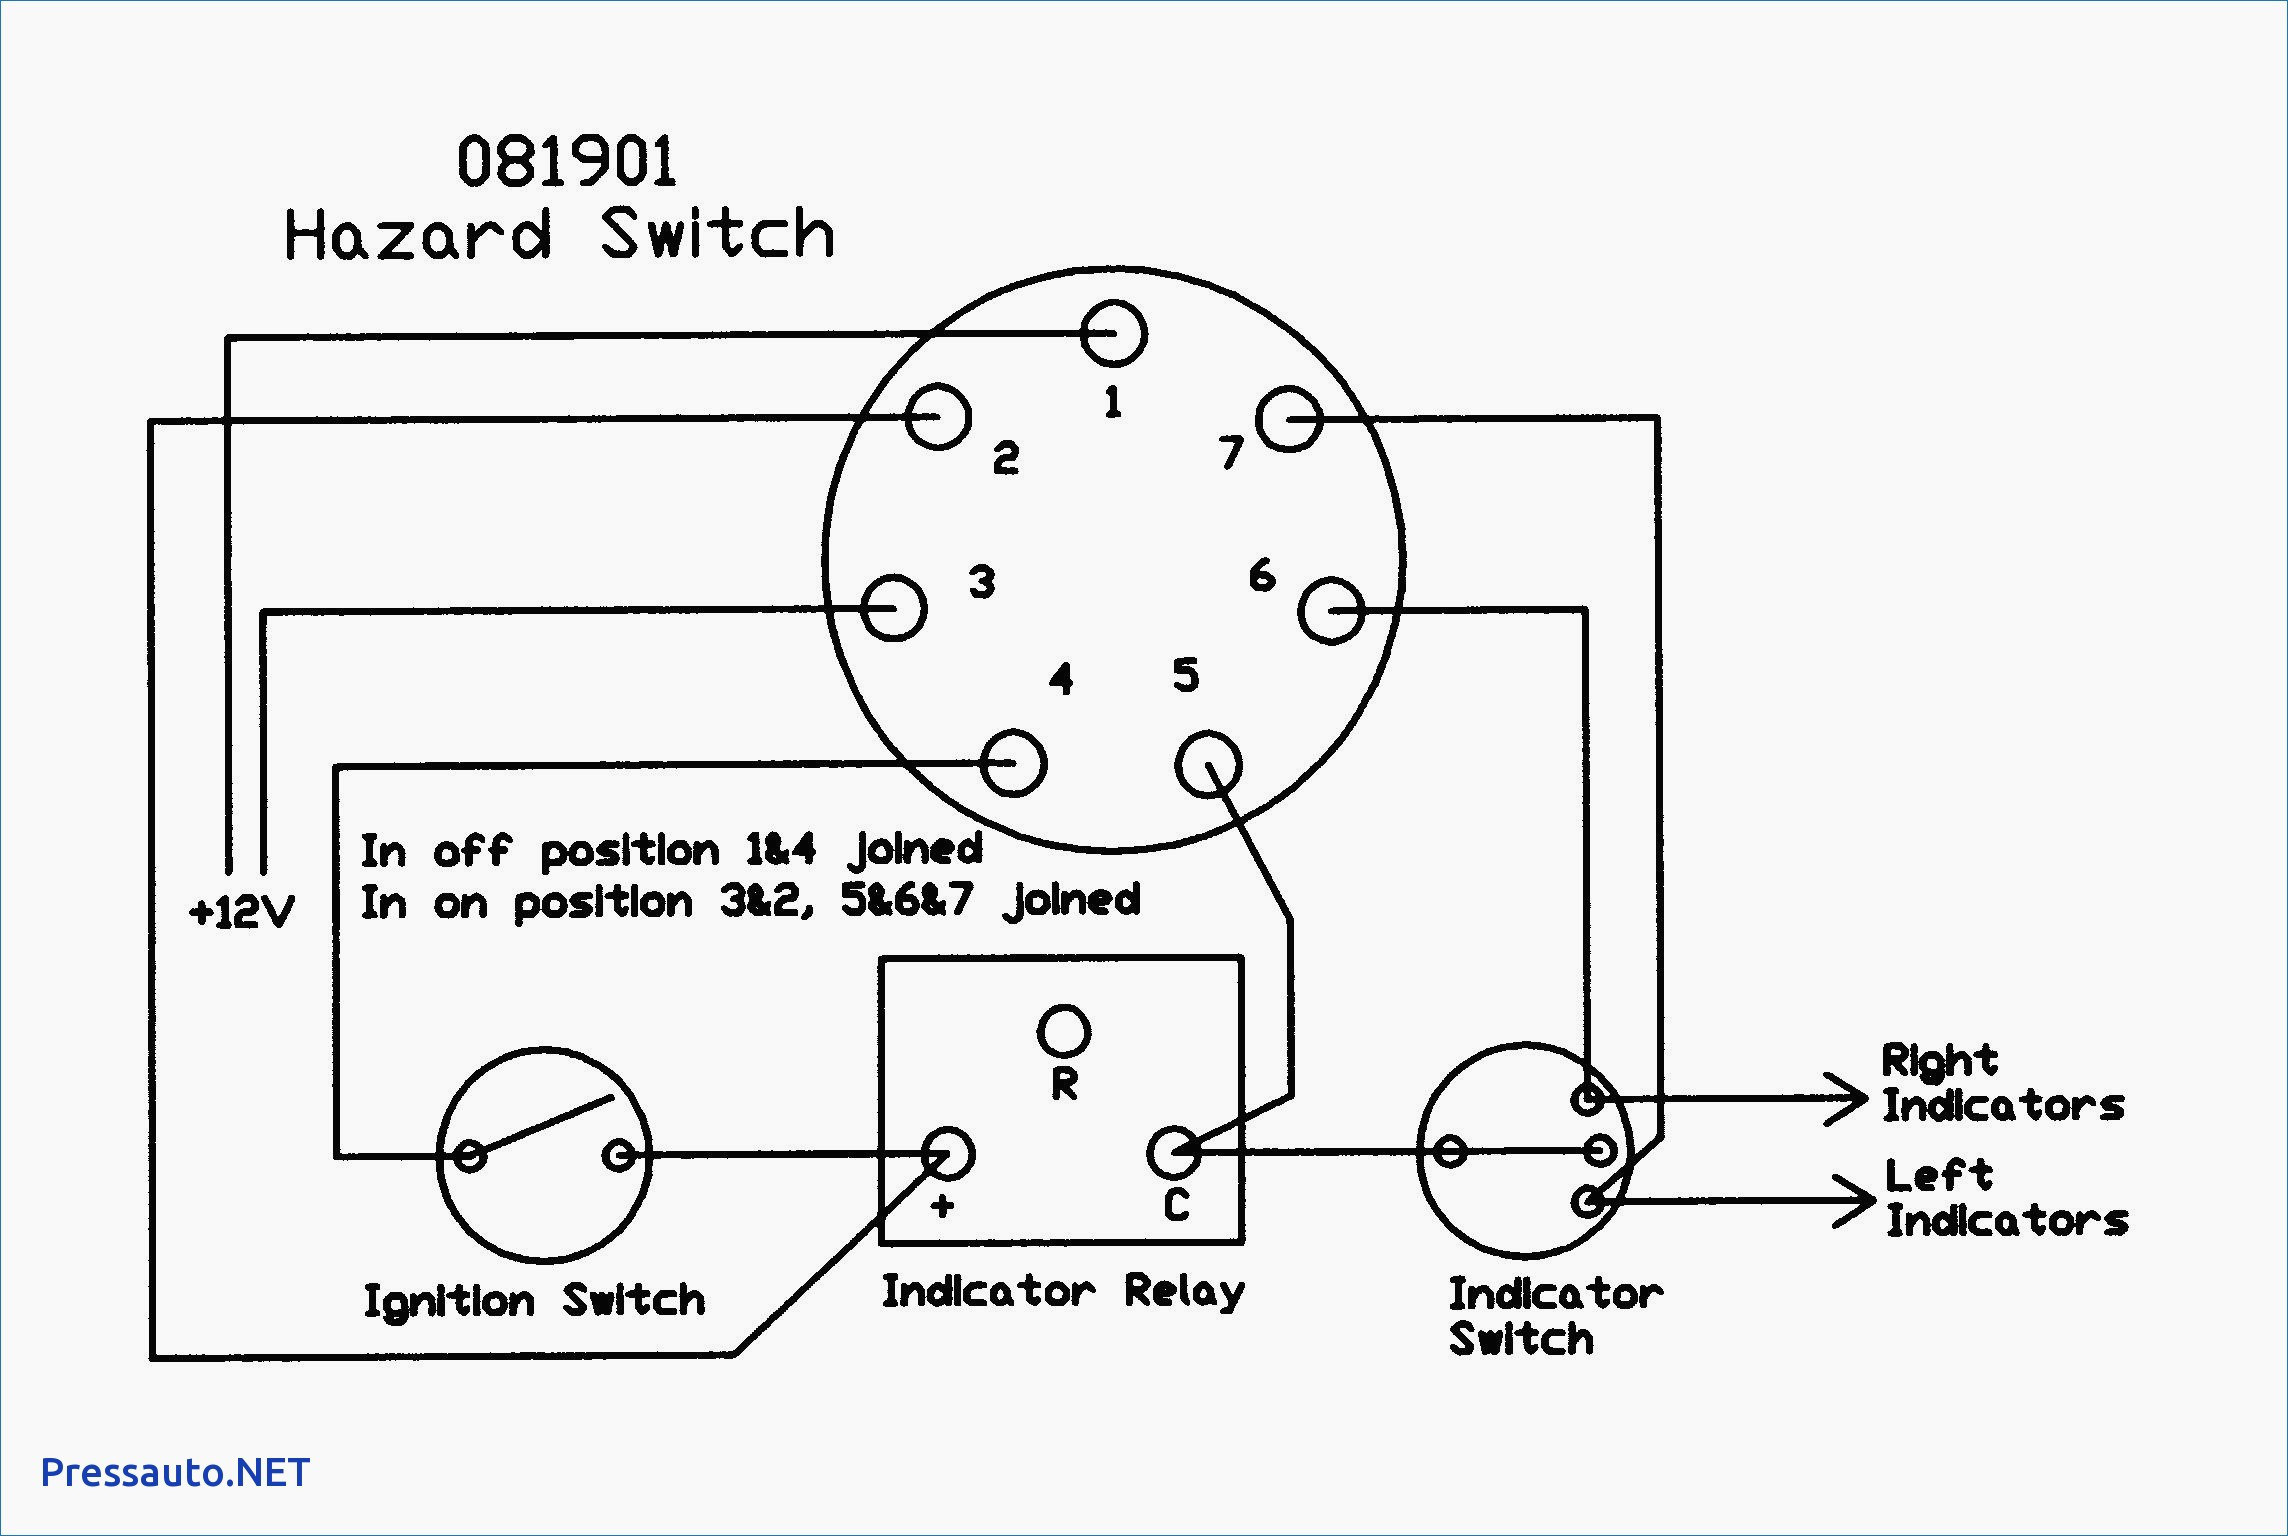 3 position ignition switch wiring diagram collection